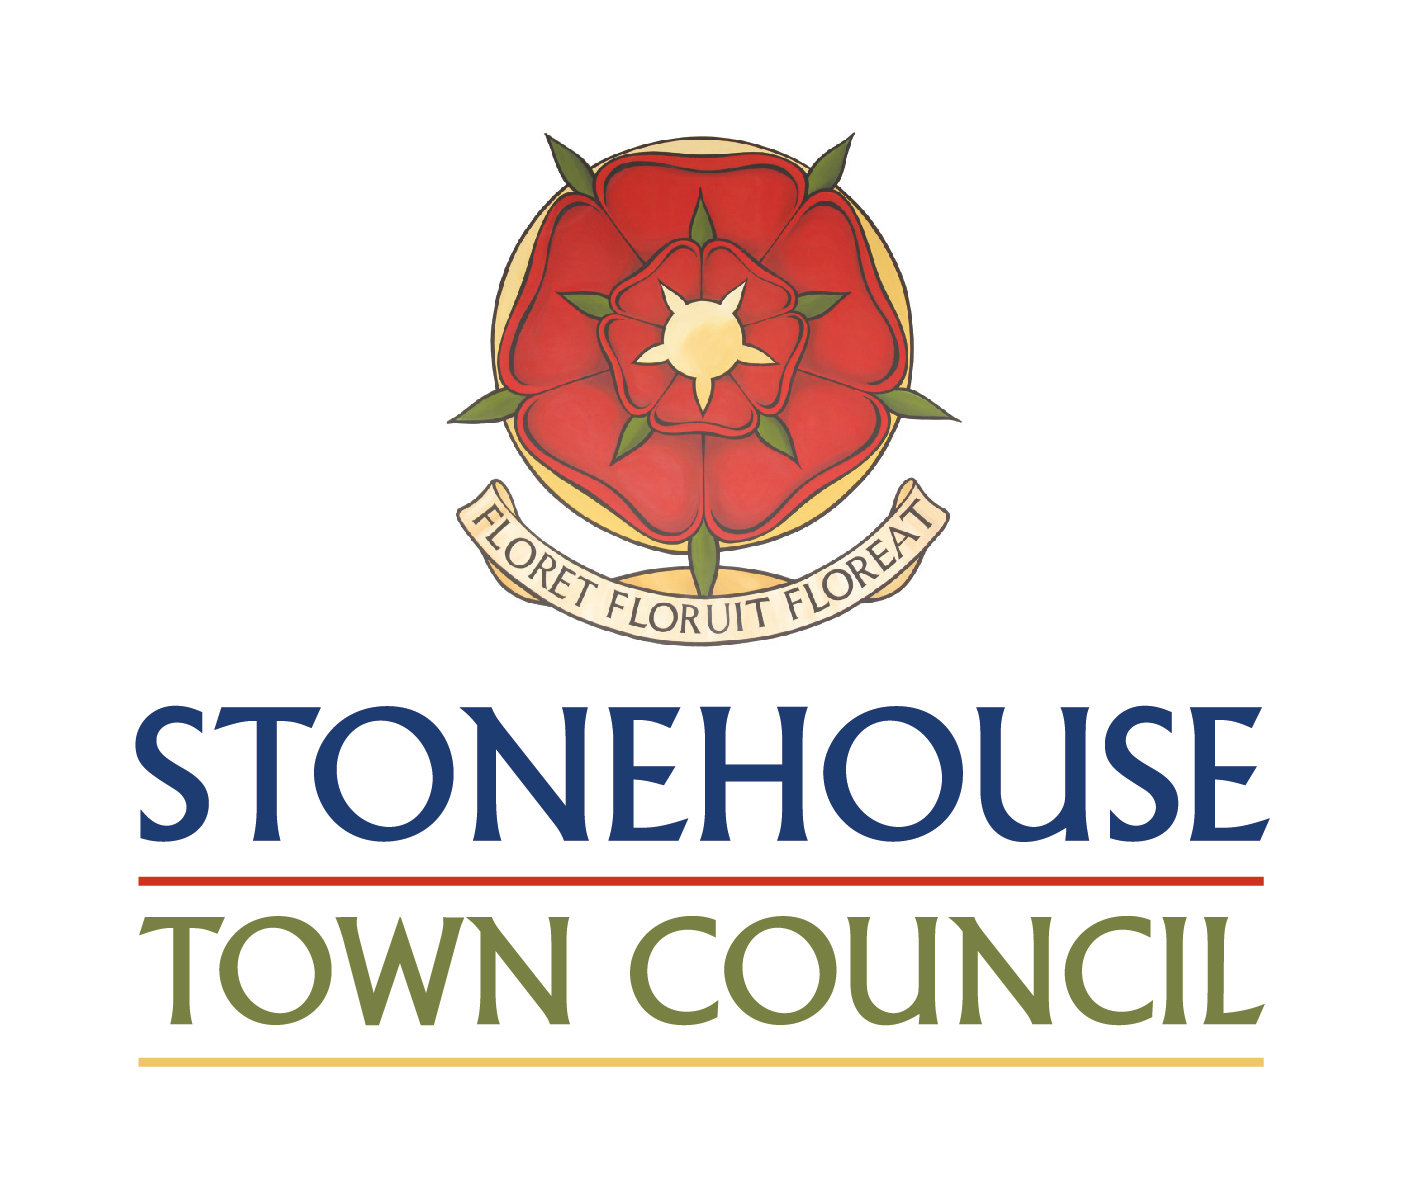 Stonehouse Town Council logo - name , rose and mot